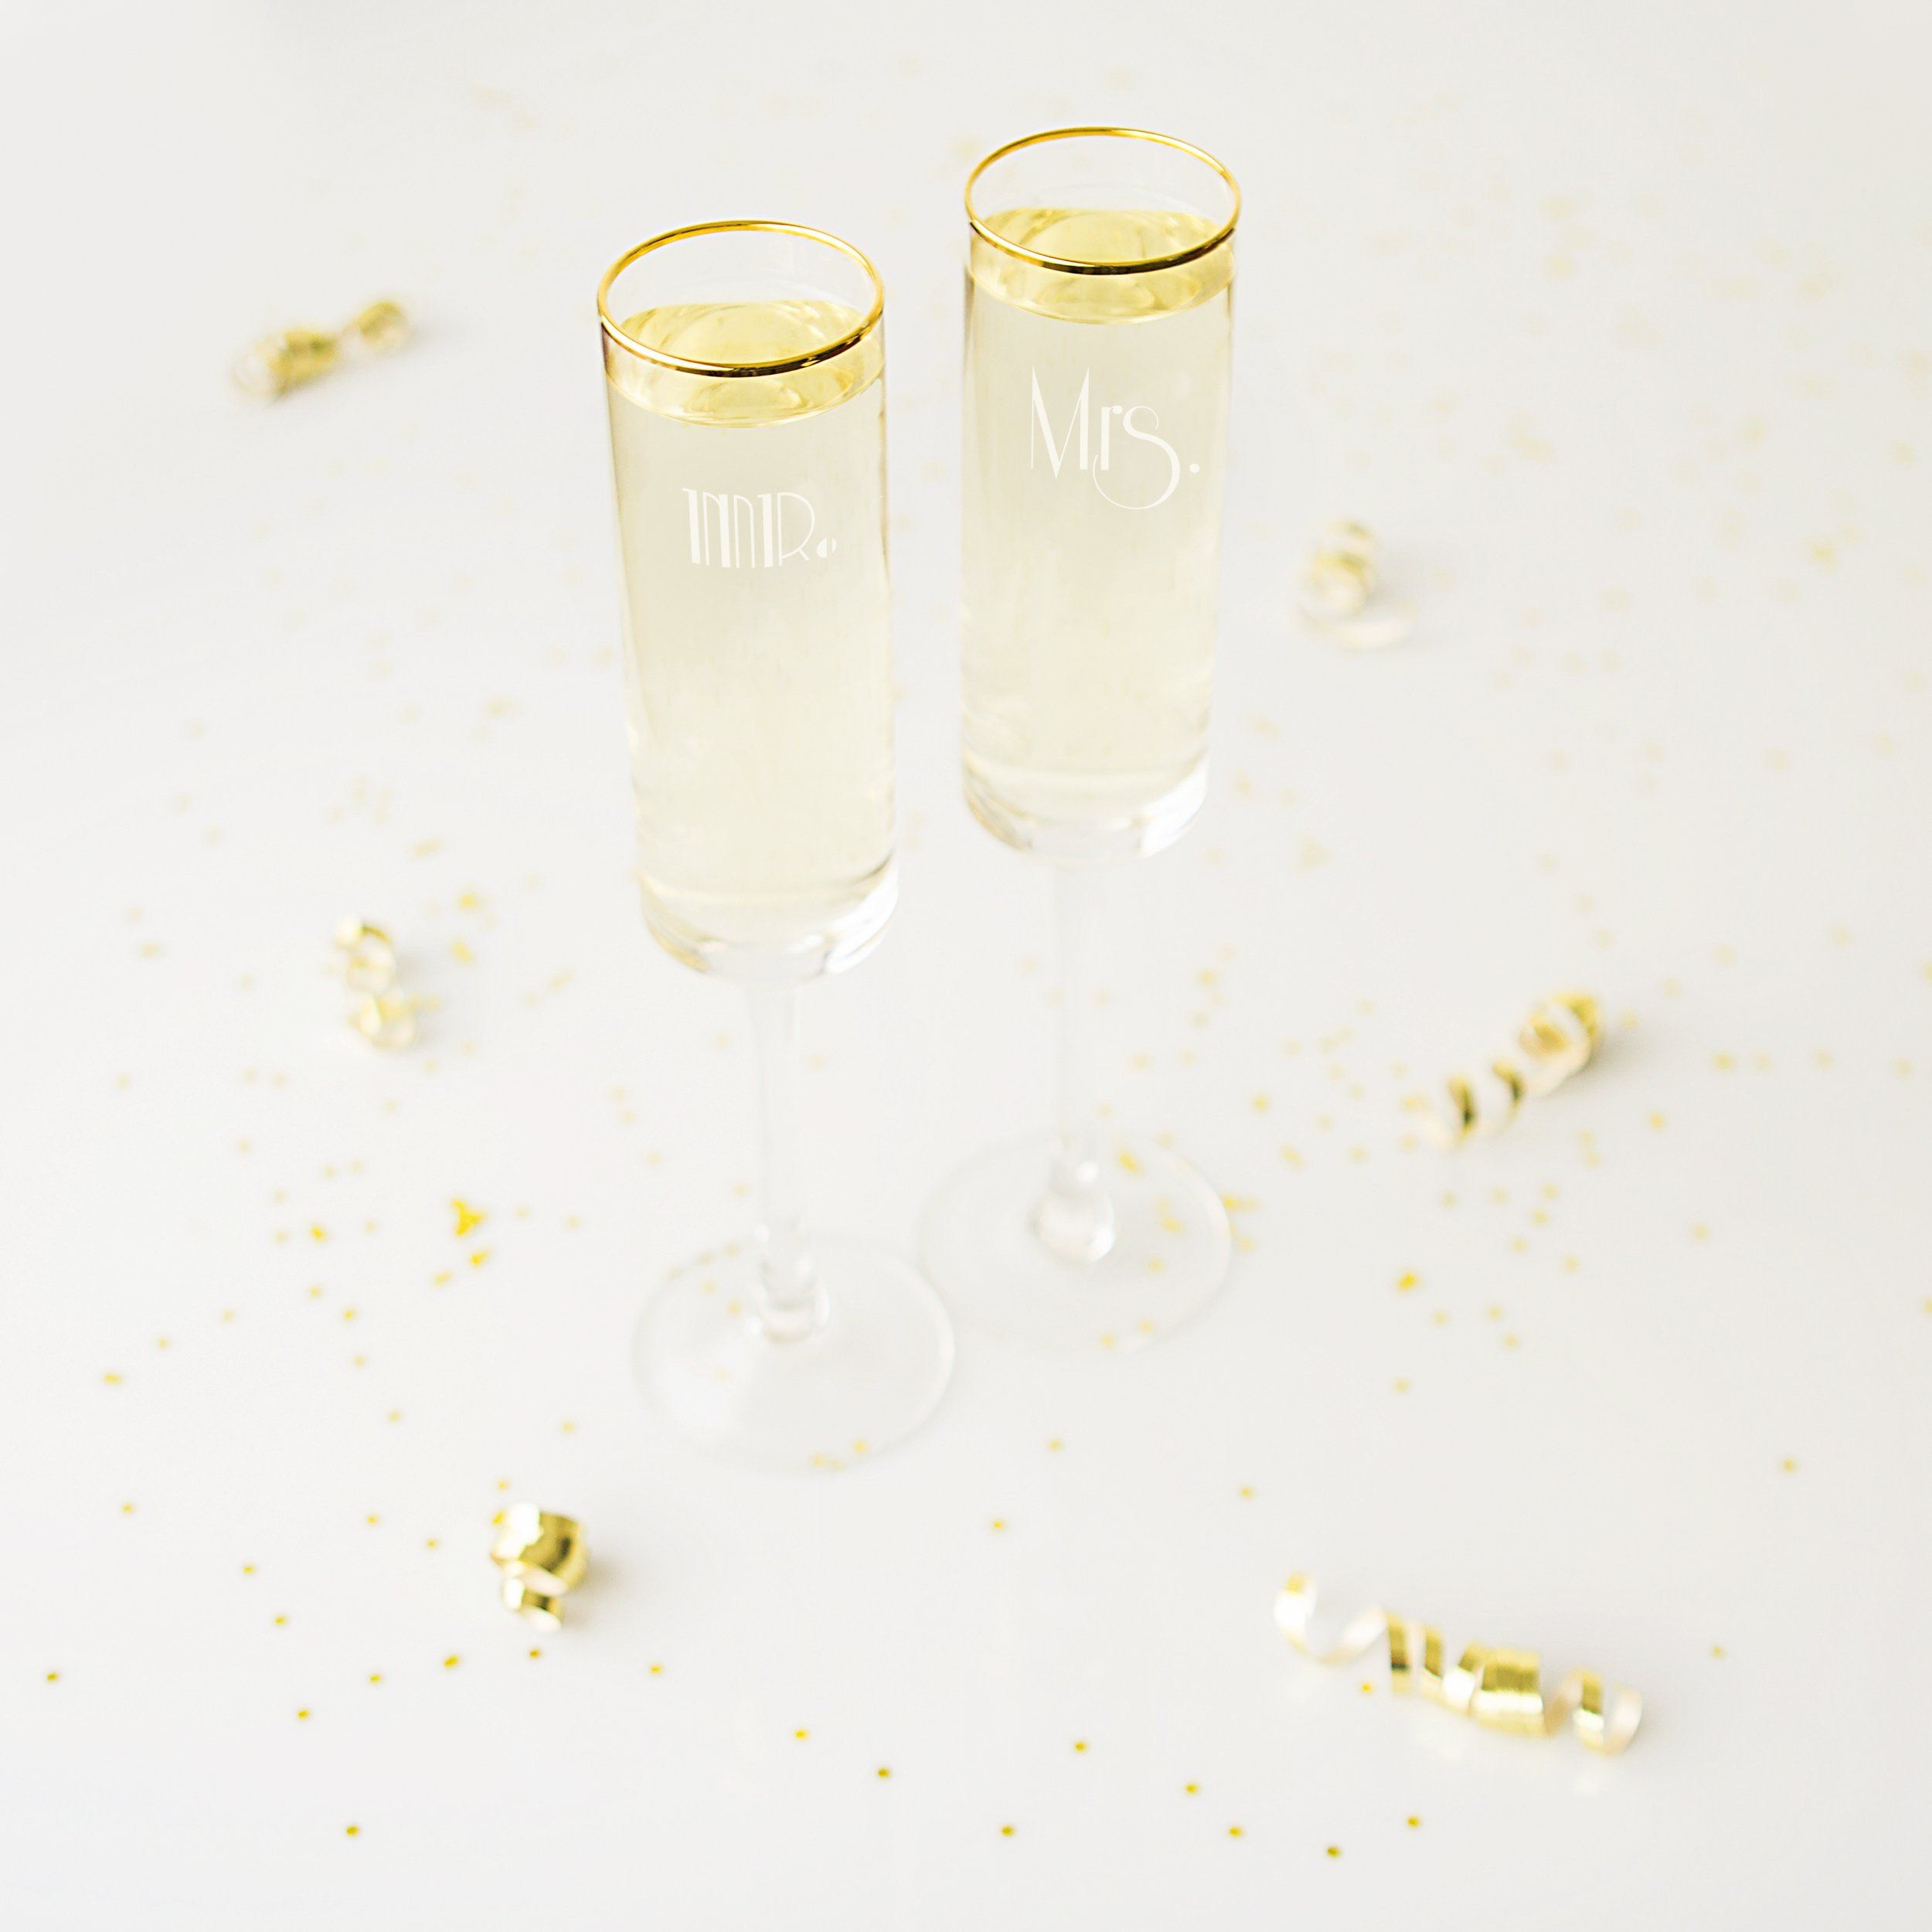 Cathy's Concepts GMM-3668G Mr. & Mrs. Gatsby Rim Contemporary Champagne Flutes, Clear/Gold by Cathy's Concepts (Image #3)